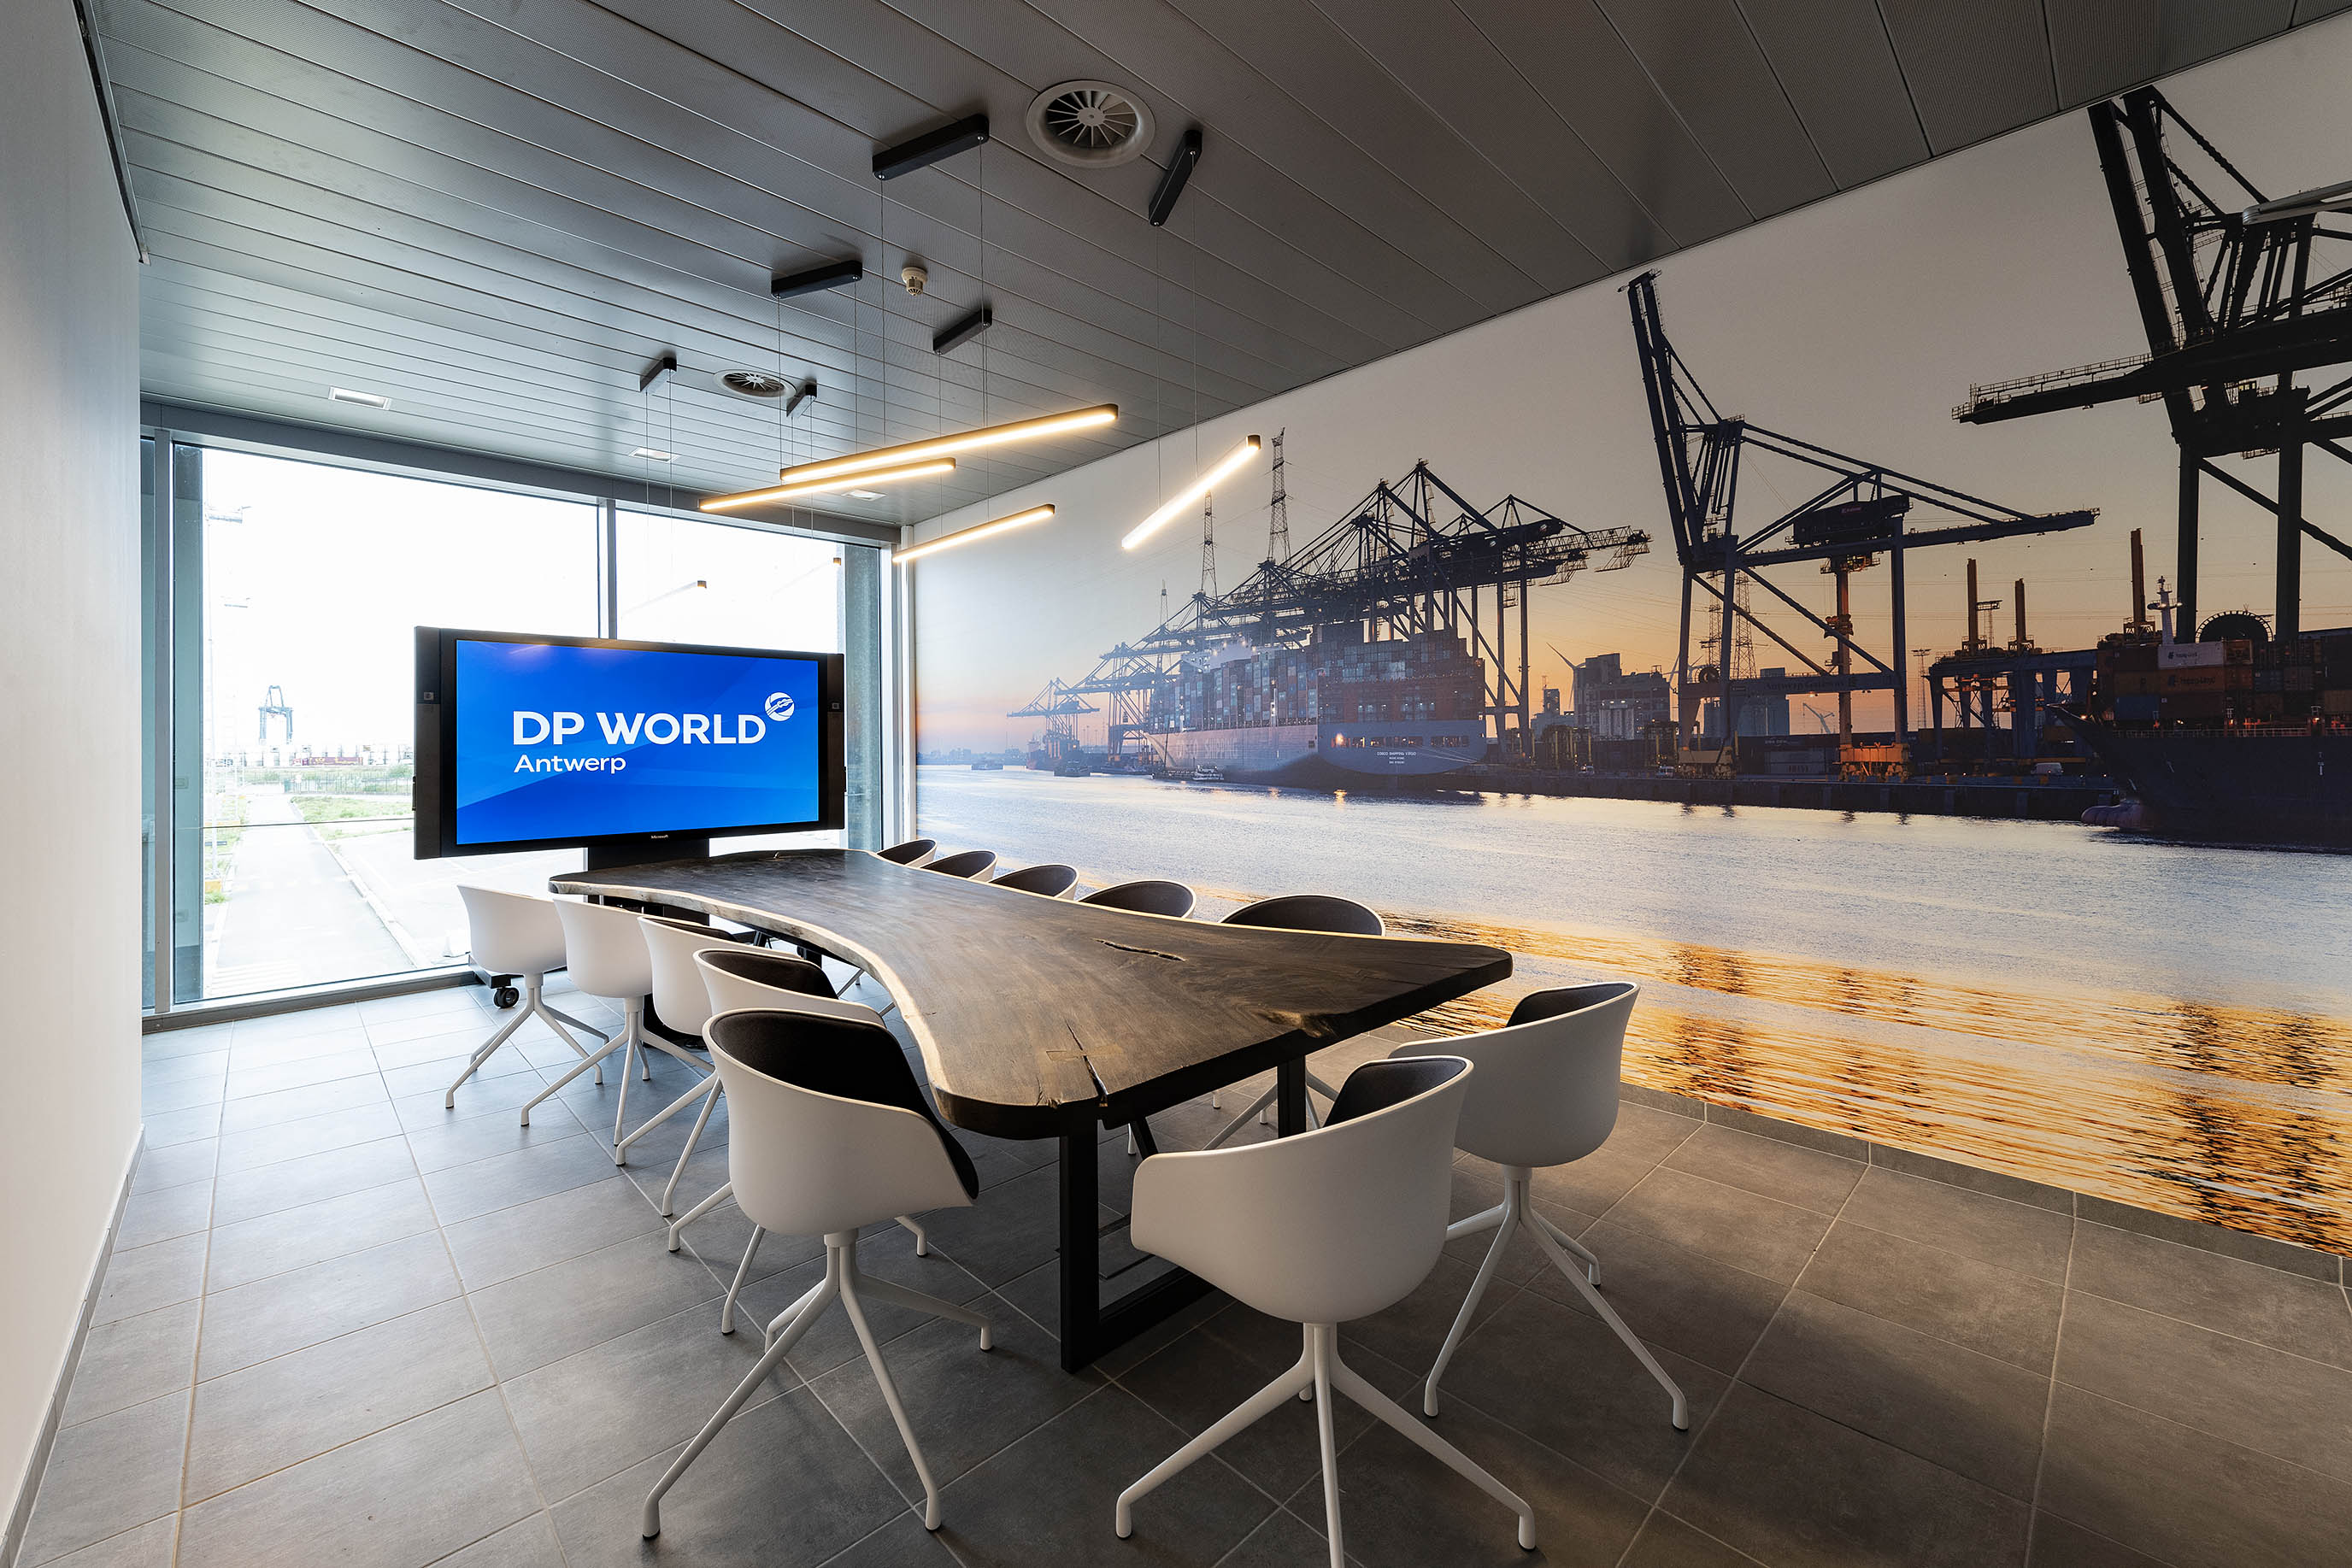 Arthur Los Fotografie - DP World Antwerp